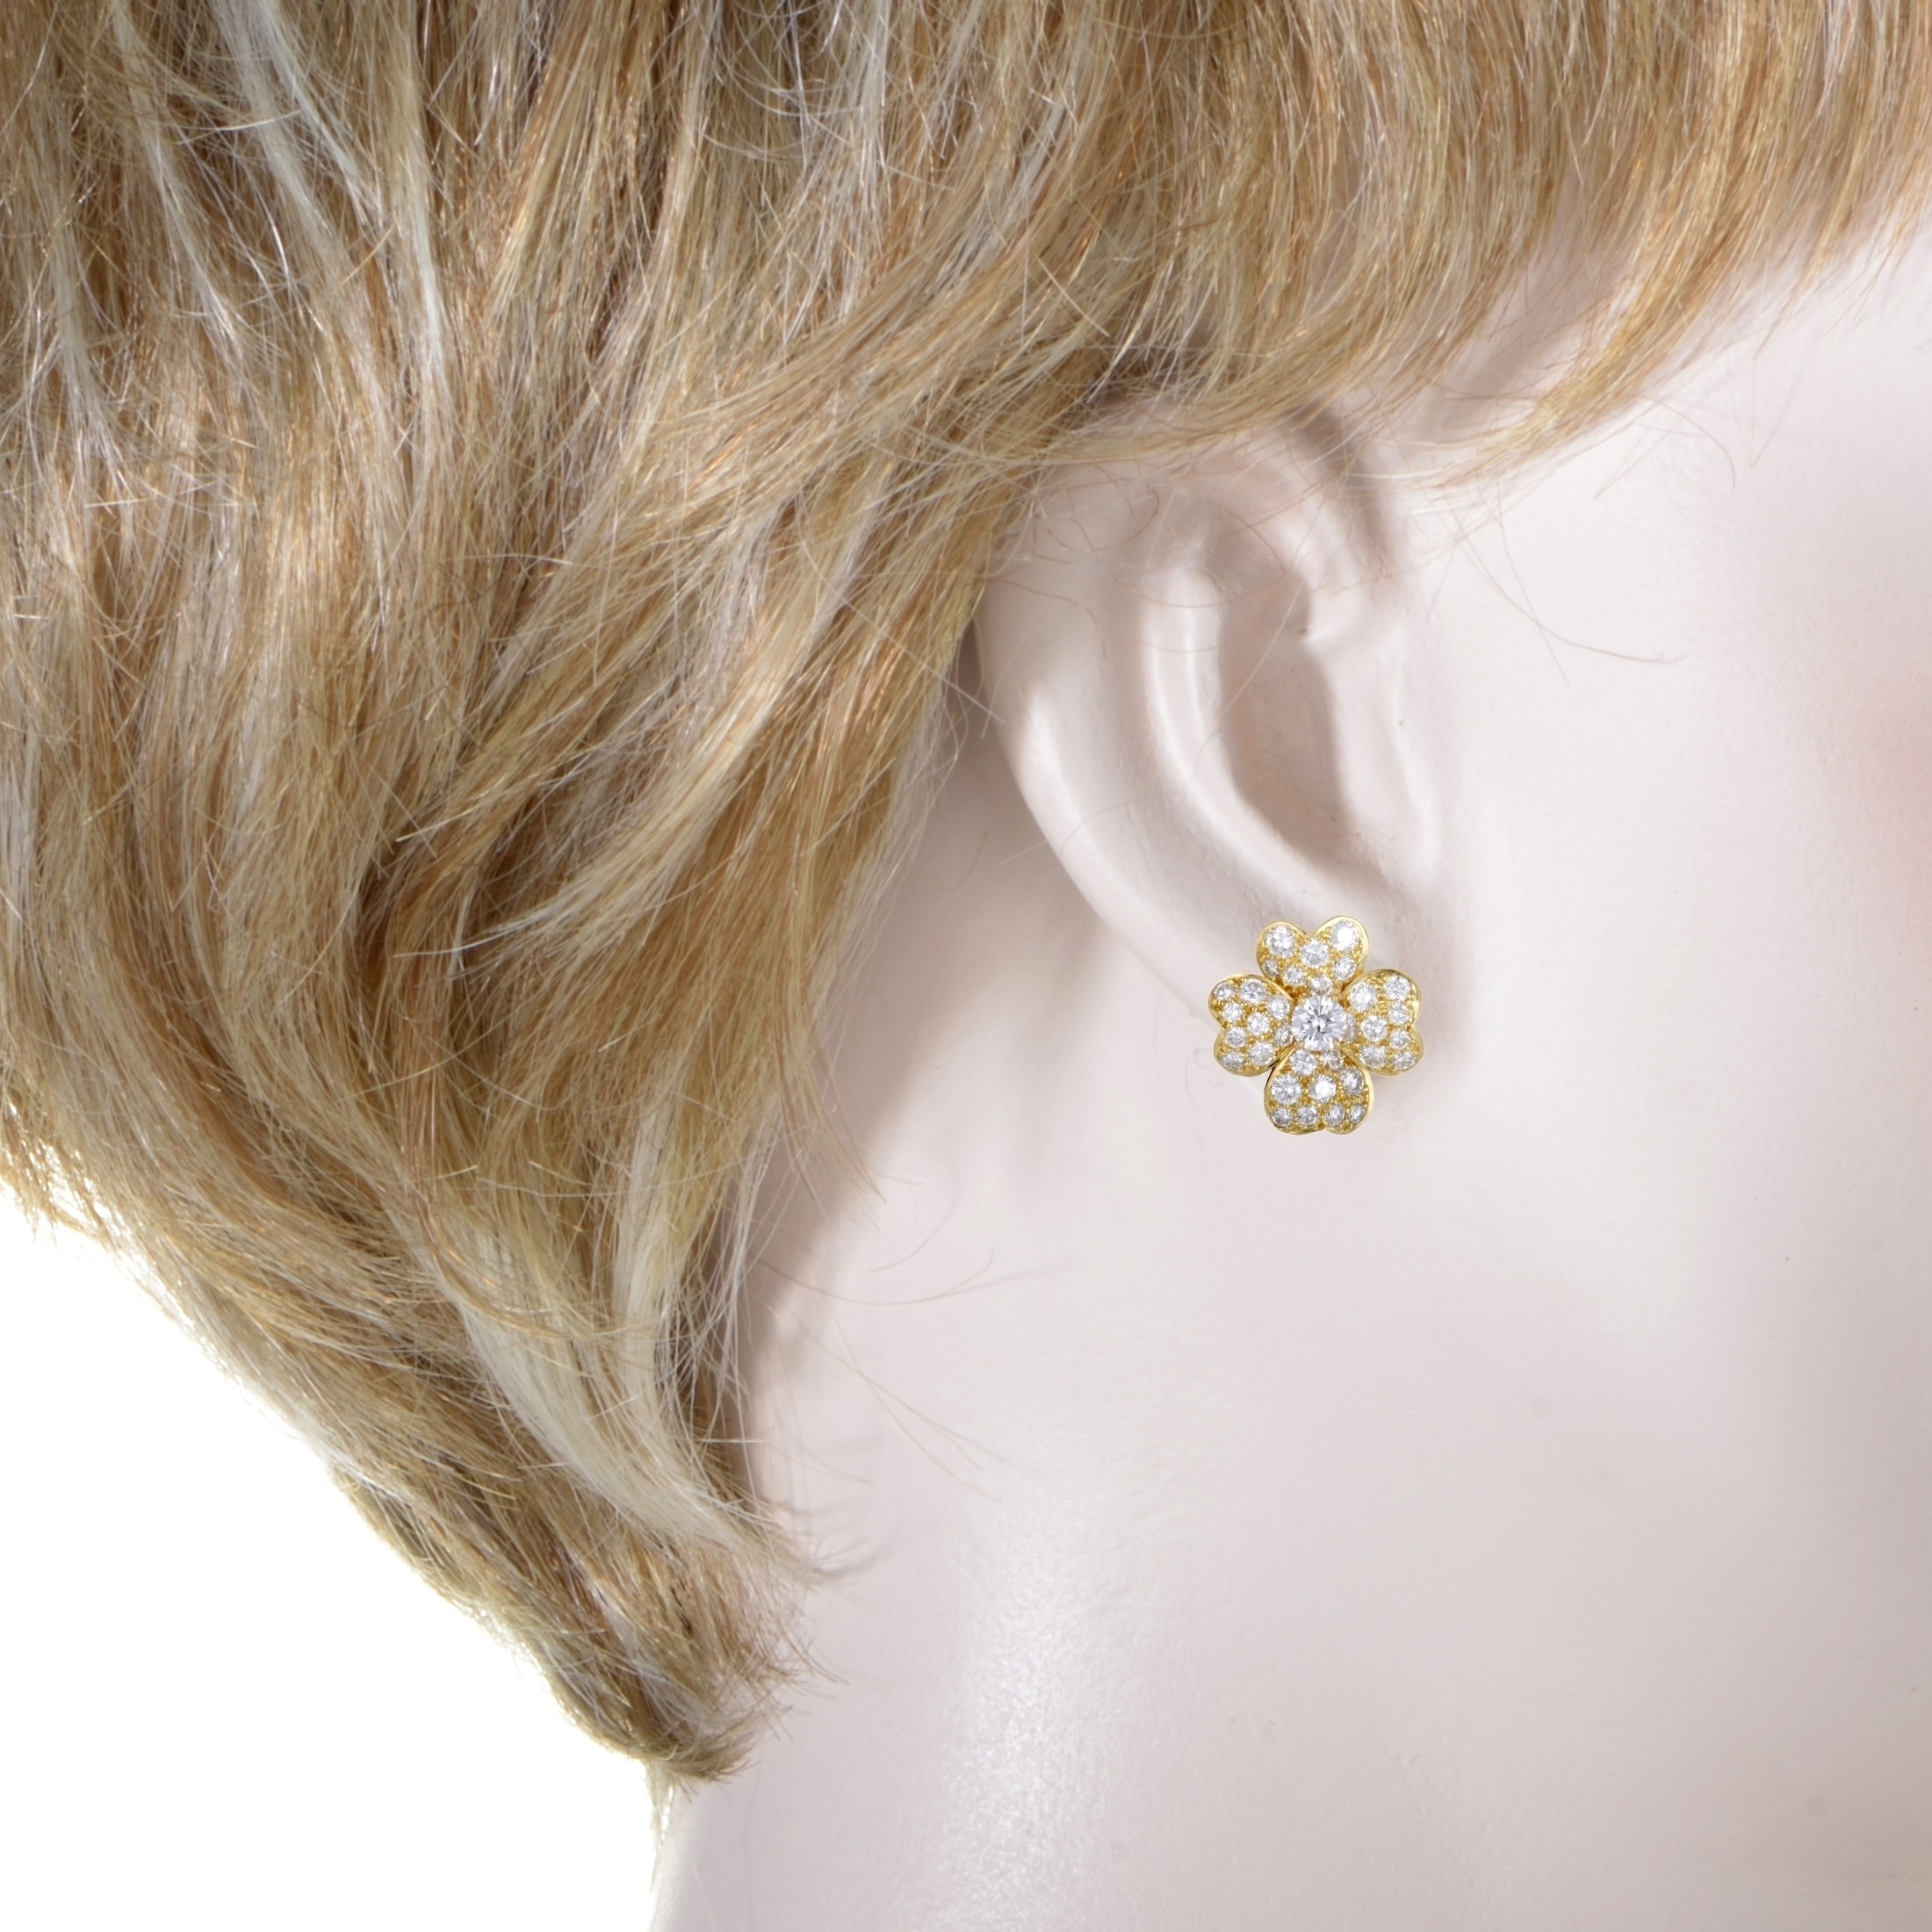 ef24cc6e7f9 Shop Van Cleef   Arpels Cosmos Yellow Gold Full Diamond Pave Flower Earrings  - Free Shipping Today - Overstock - 20505595